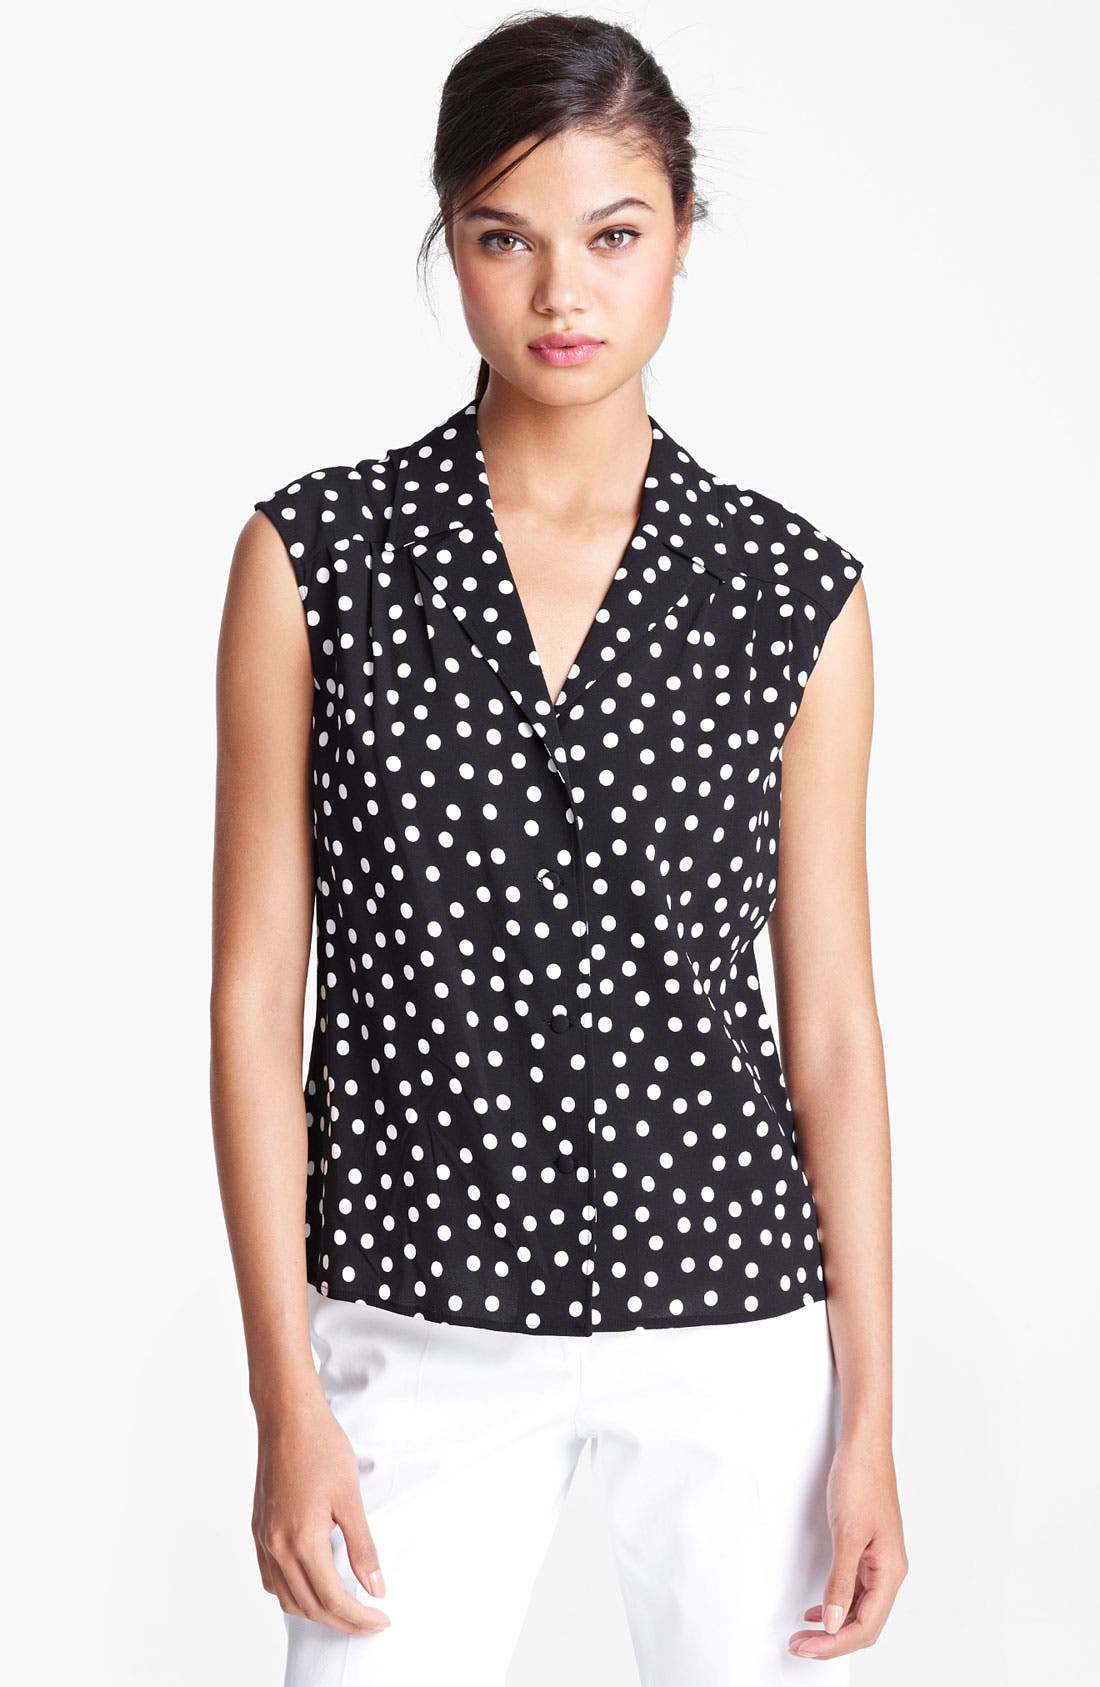 Alternate Image 1 Selected - Dolce&Gabbana Polka Dot Stretch Cady Blouse